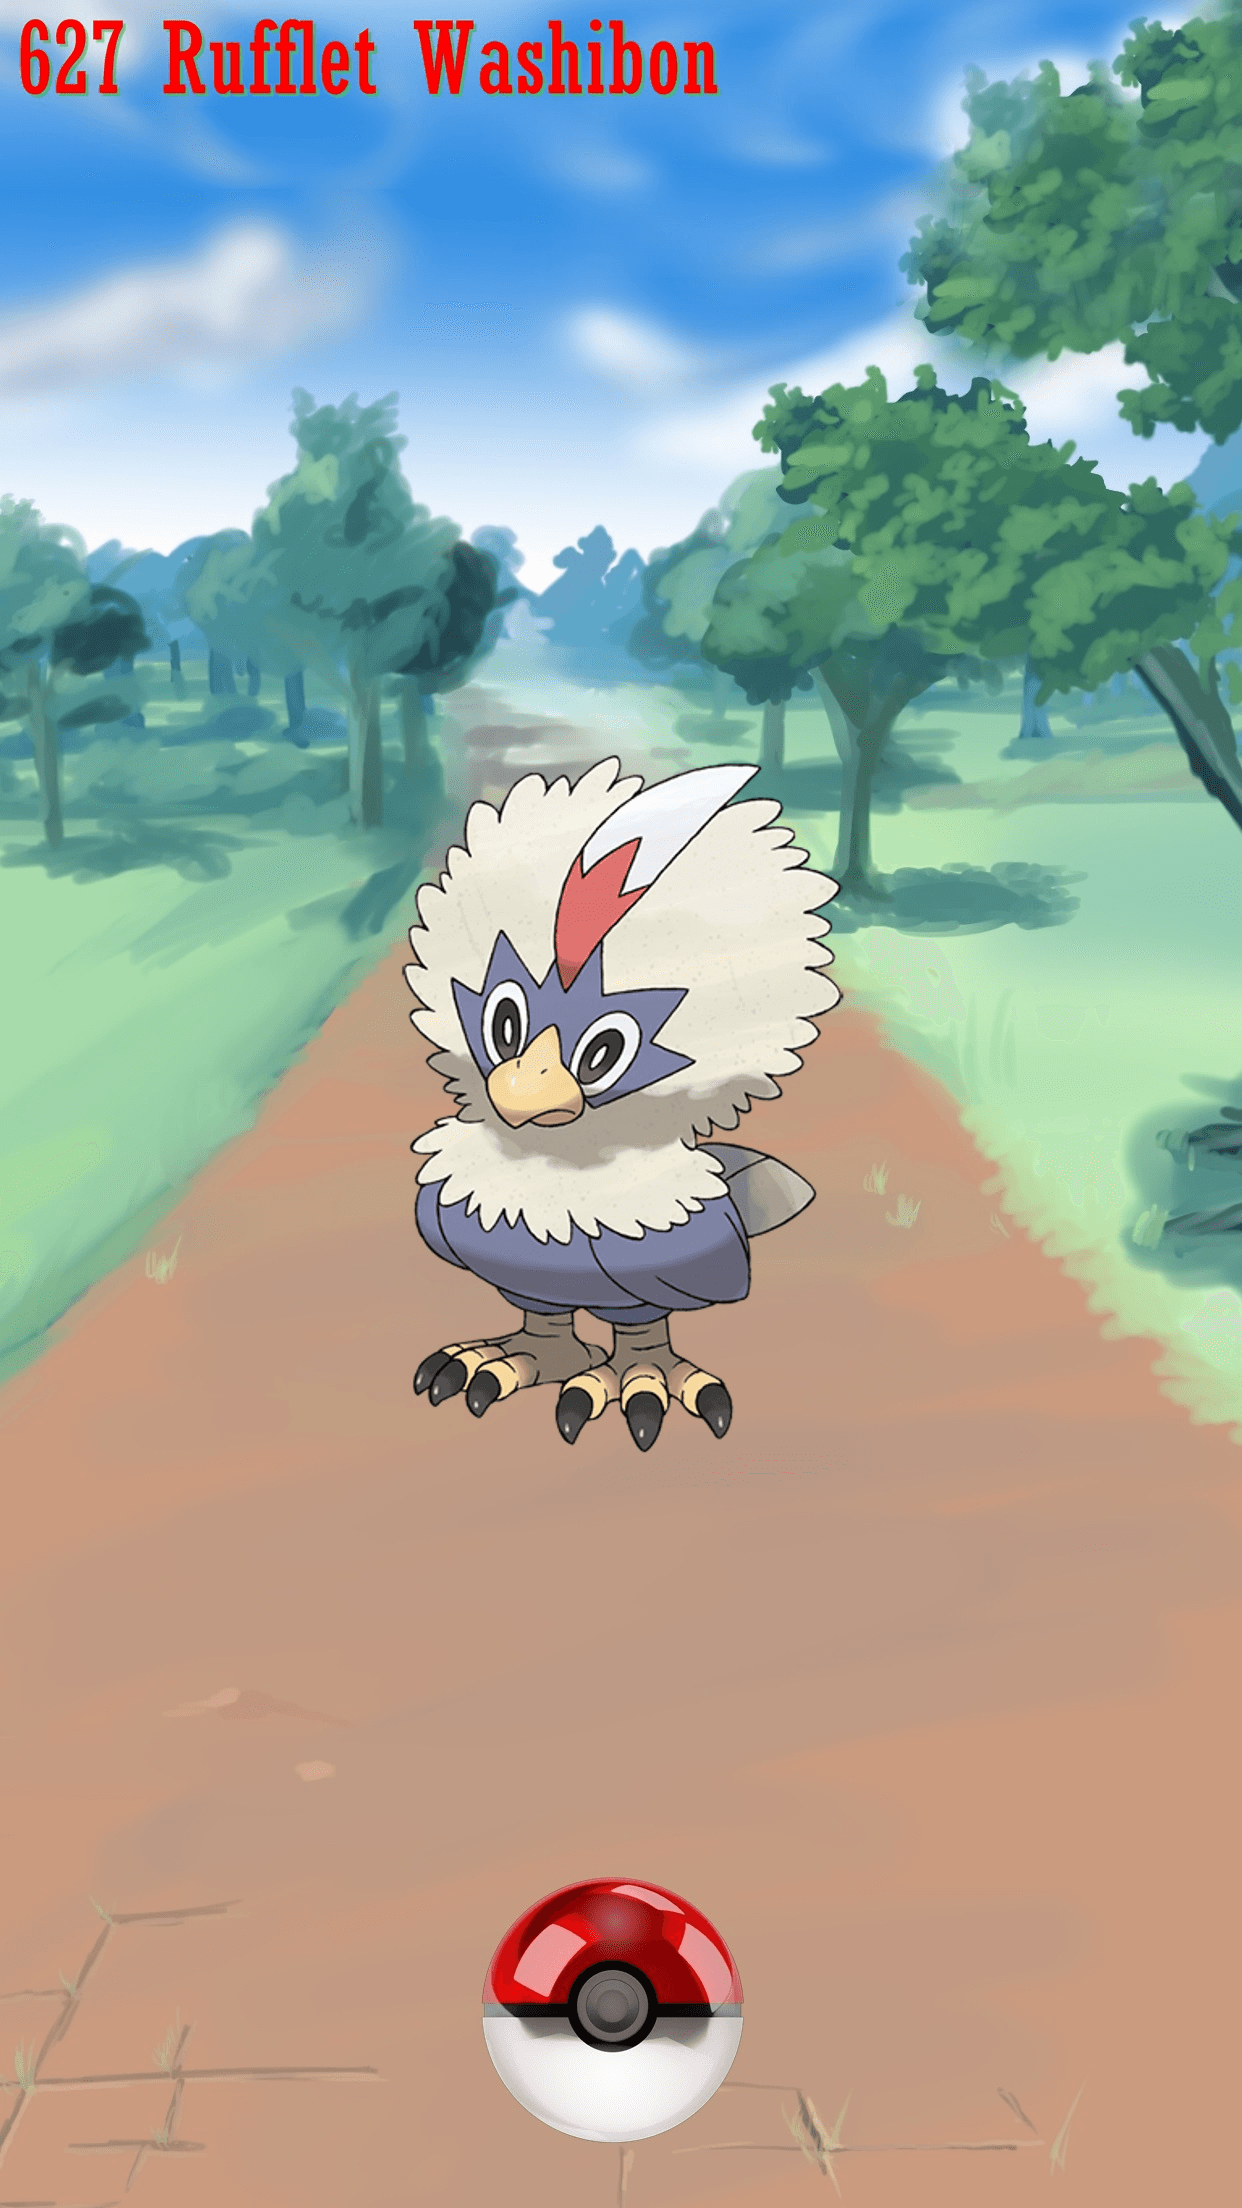 627 Street Pokeball Rufflet Washibon | Wallpaper